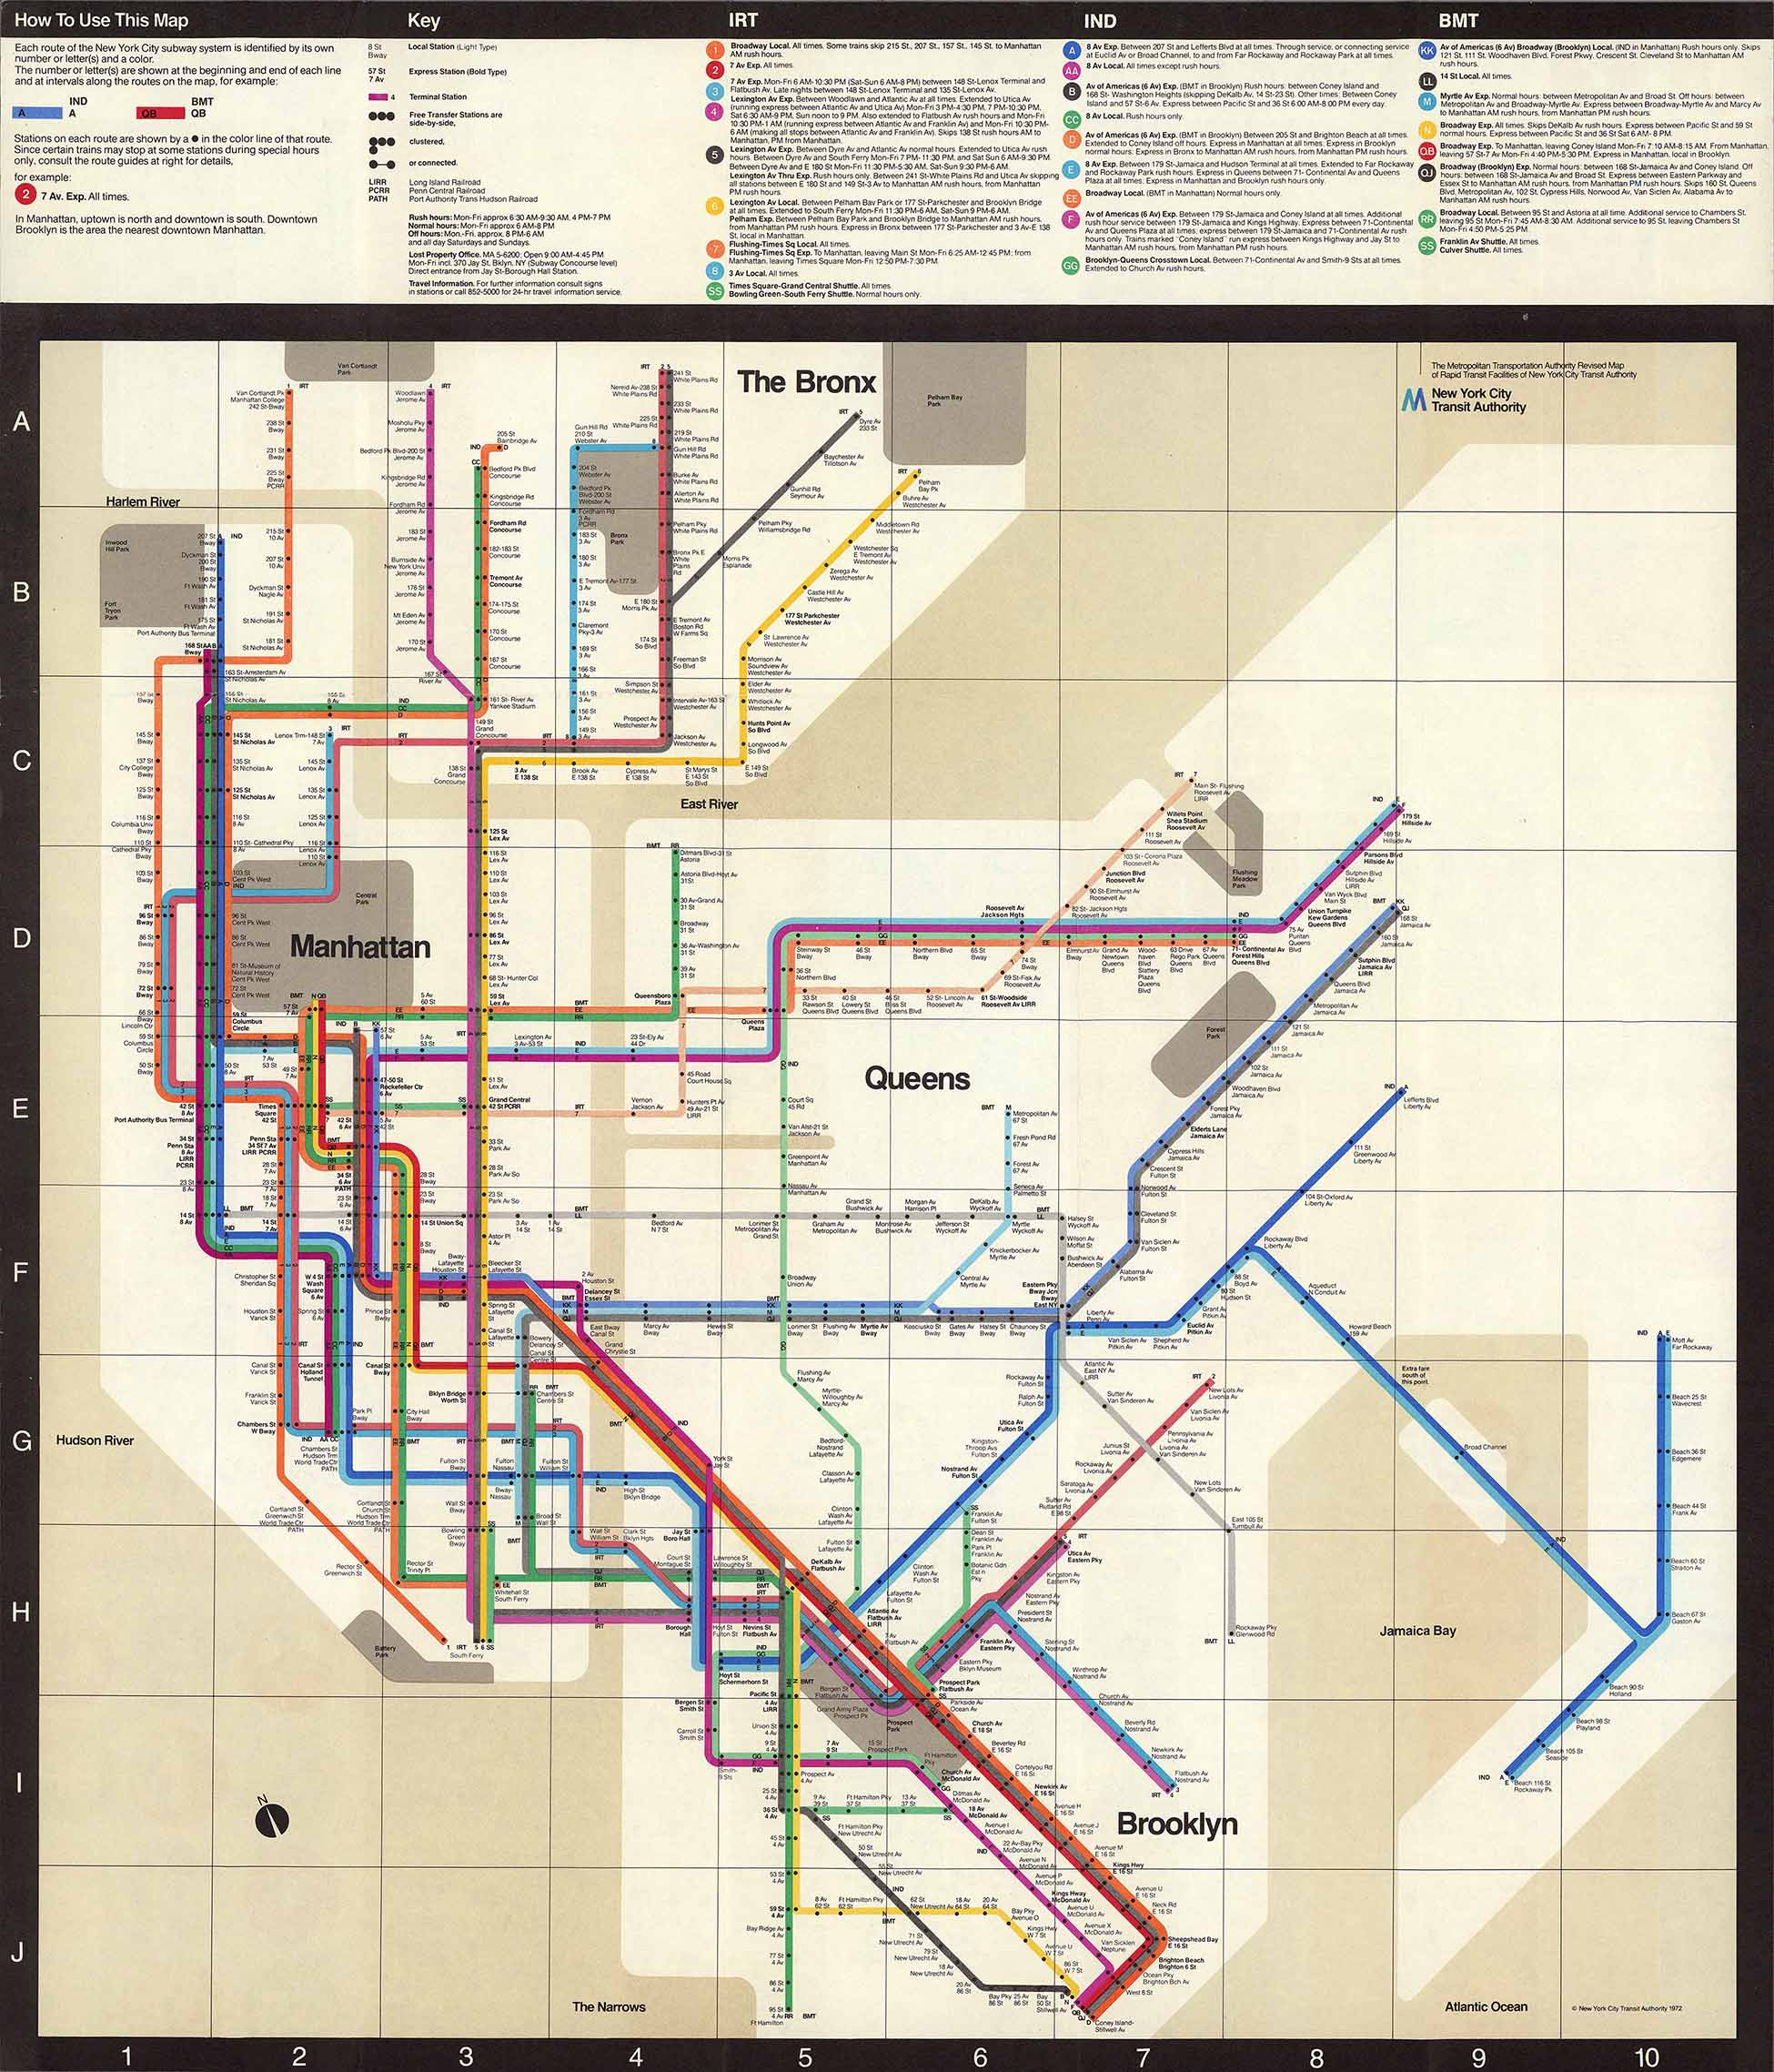 Nyc Subway Map Massimo Vignelli.1972 Vignelli Subway Map Nyc Urbanism